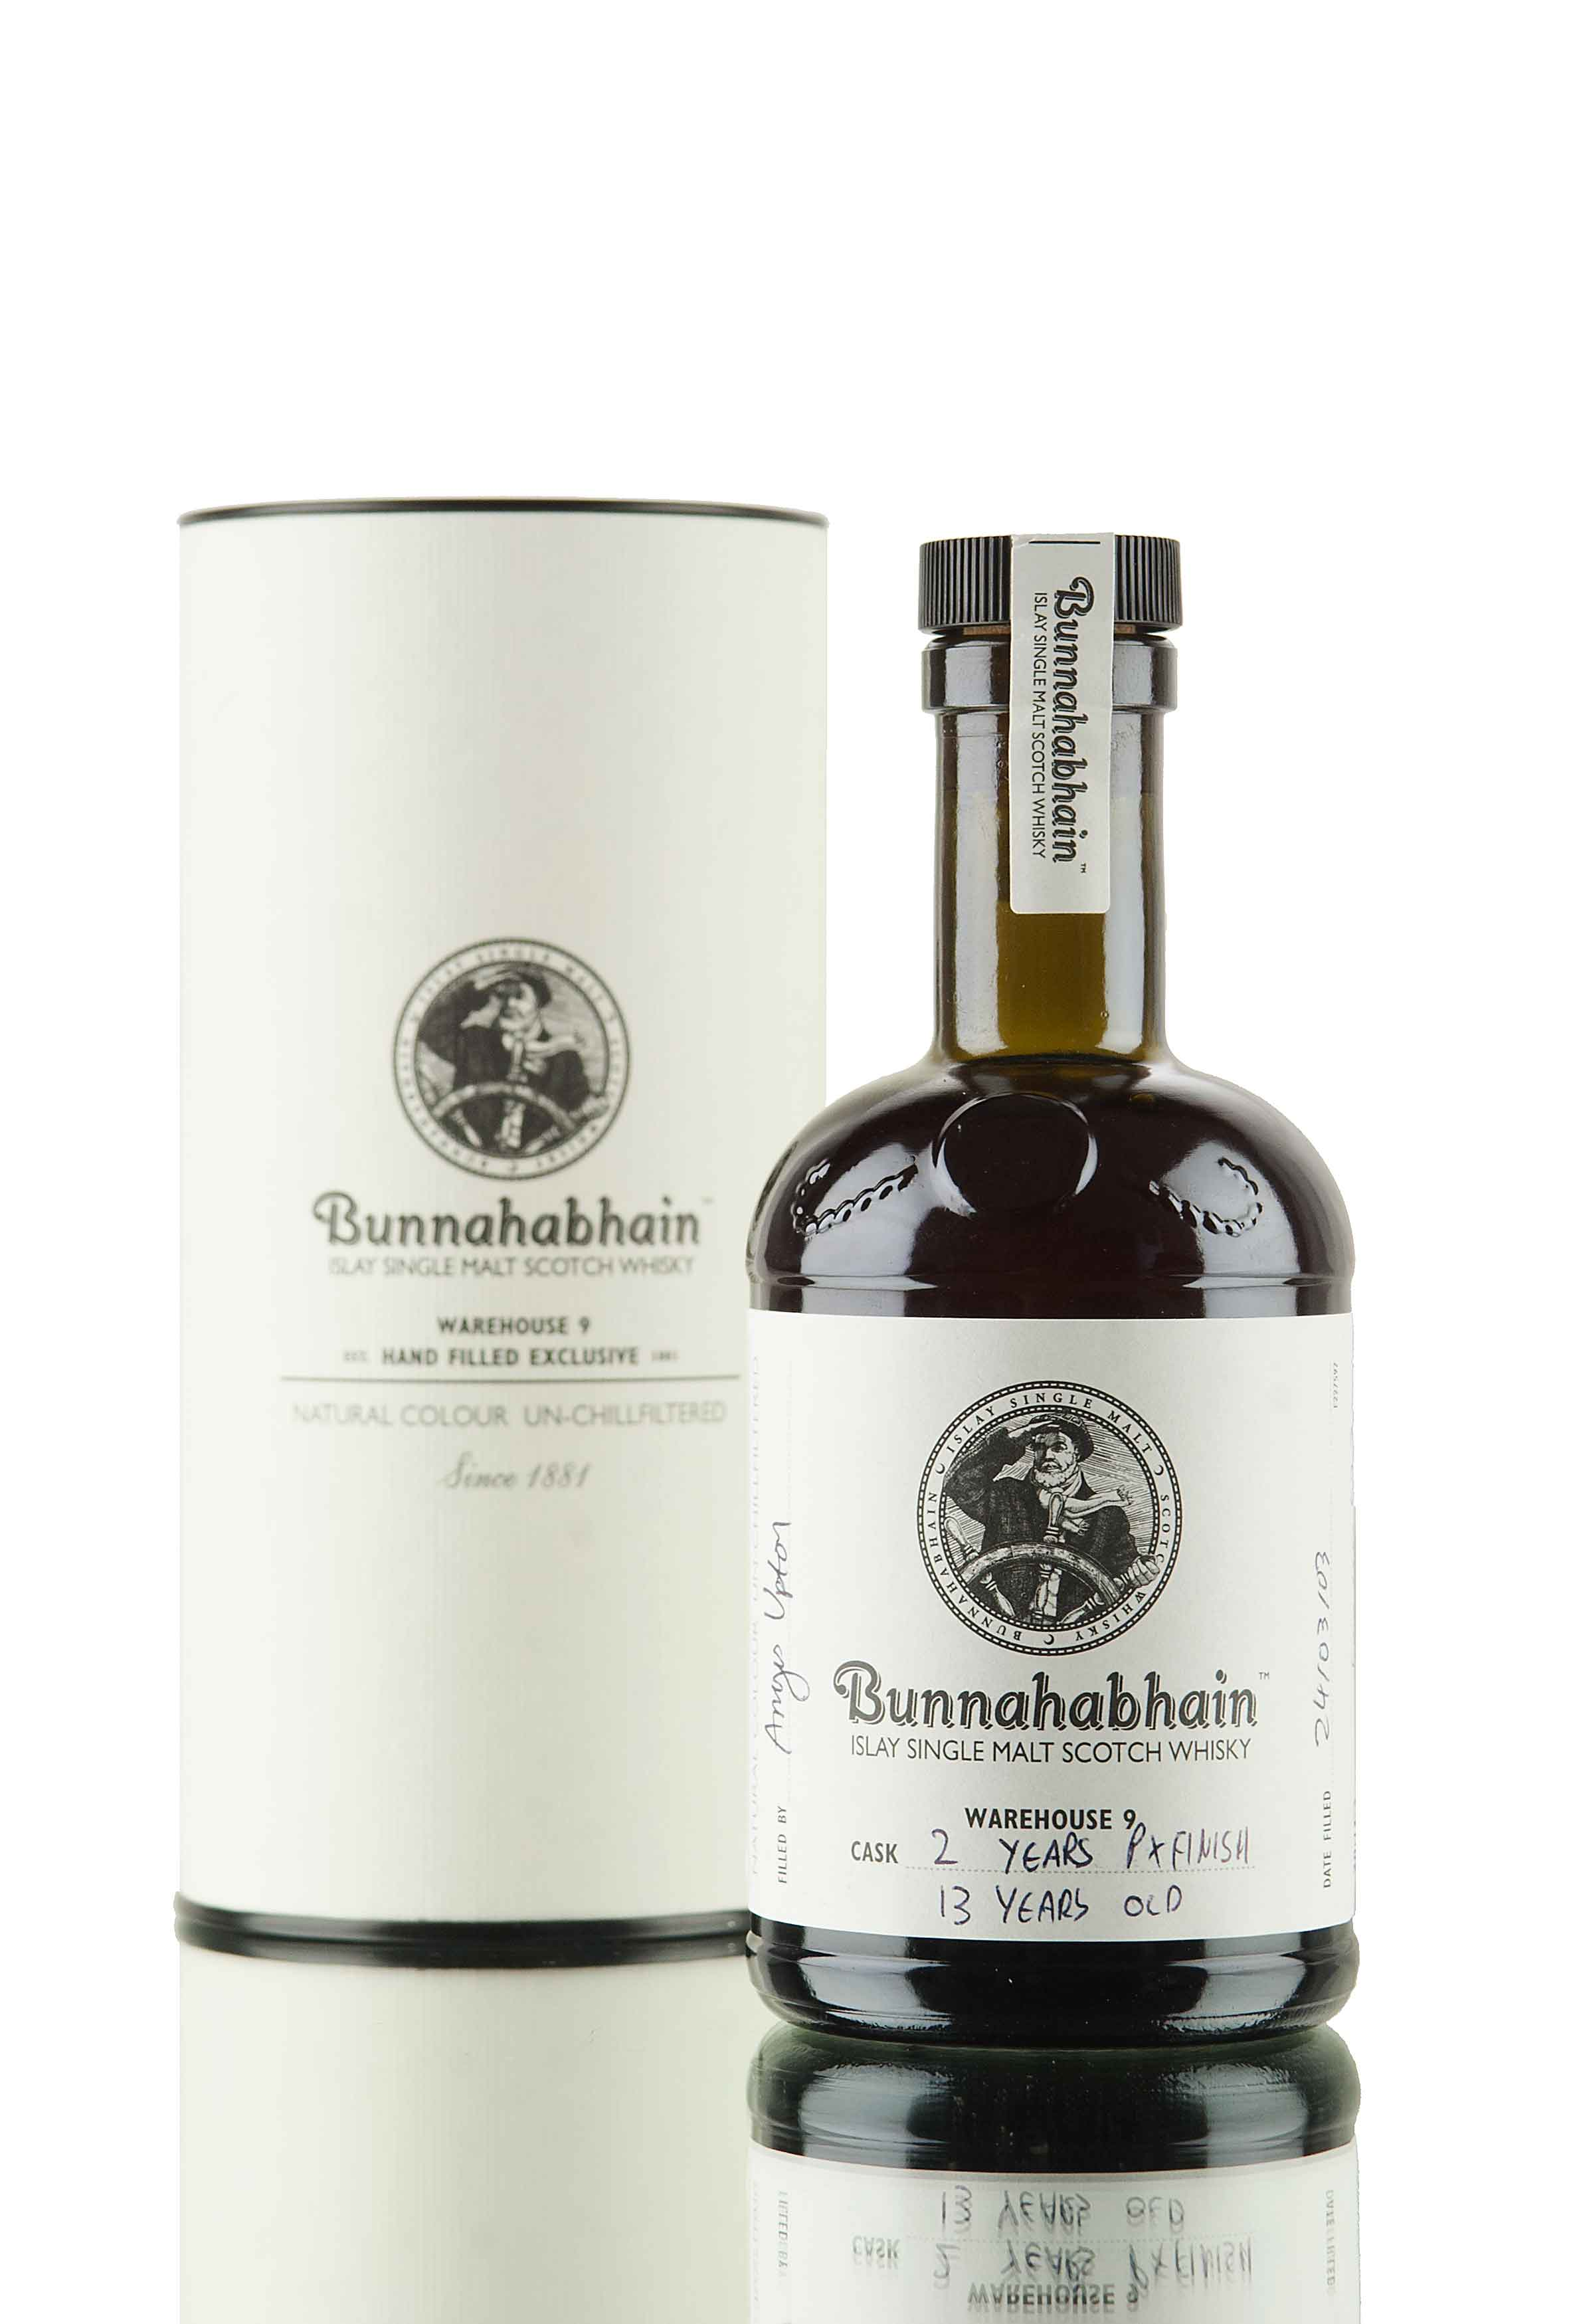 Bunnahabhain 13 Year Old - 2003 / Hand Filled Exclusive